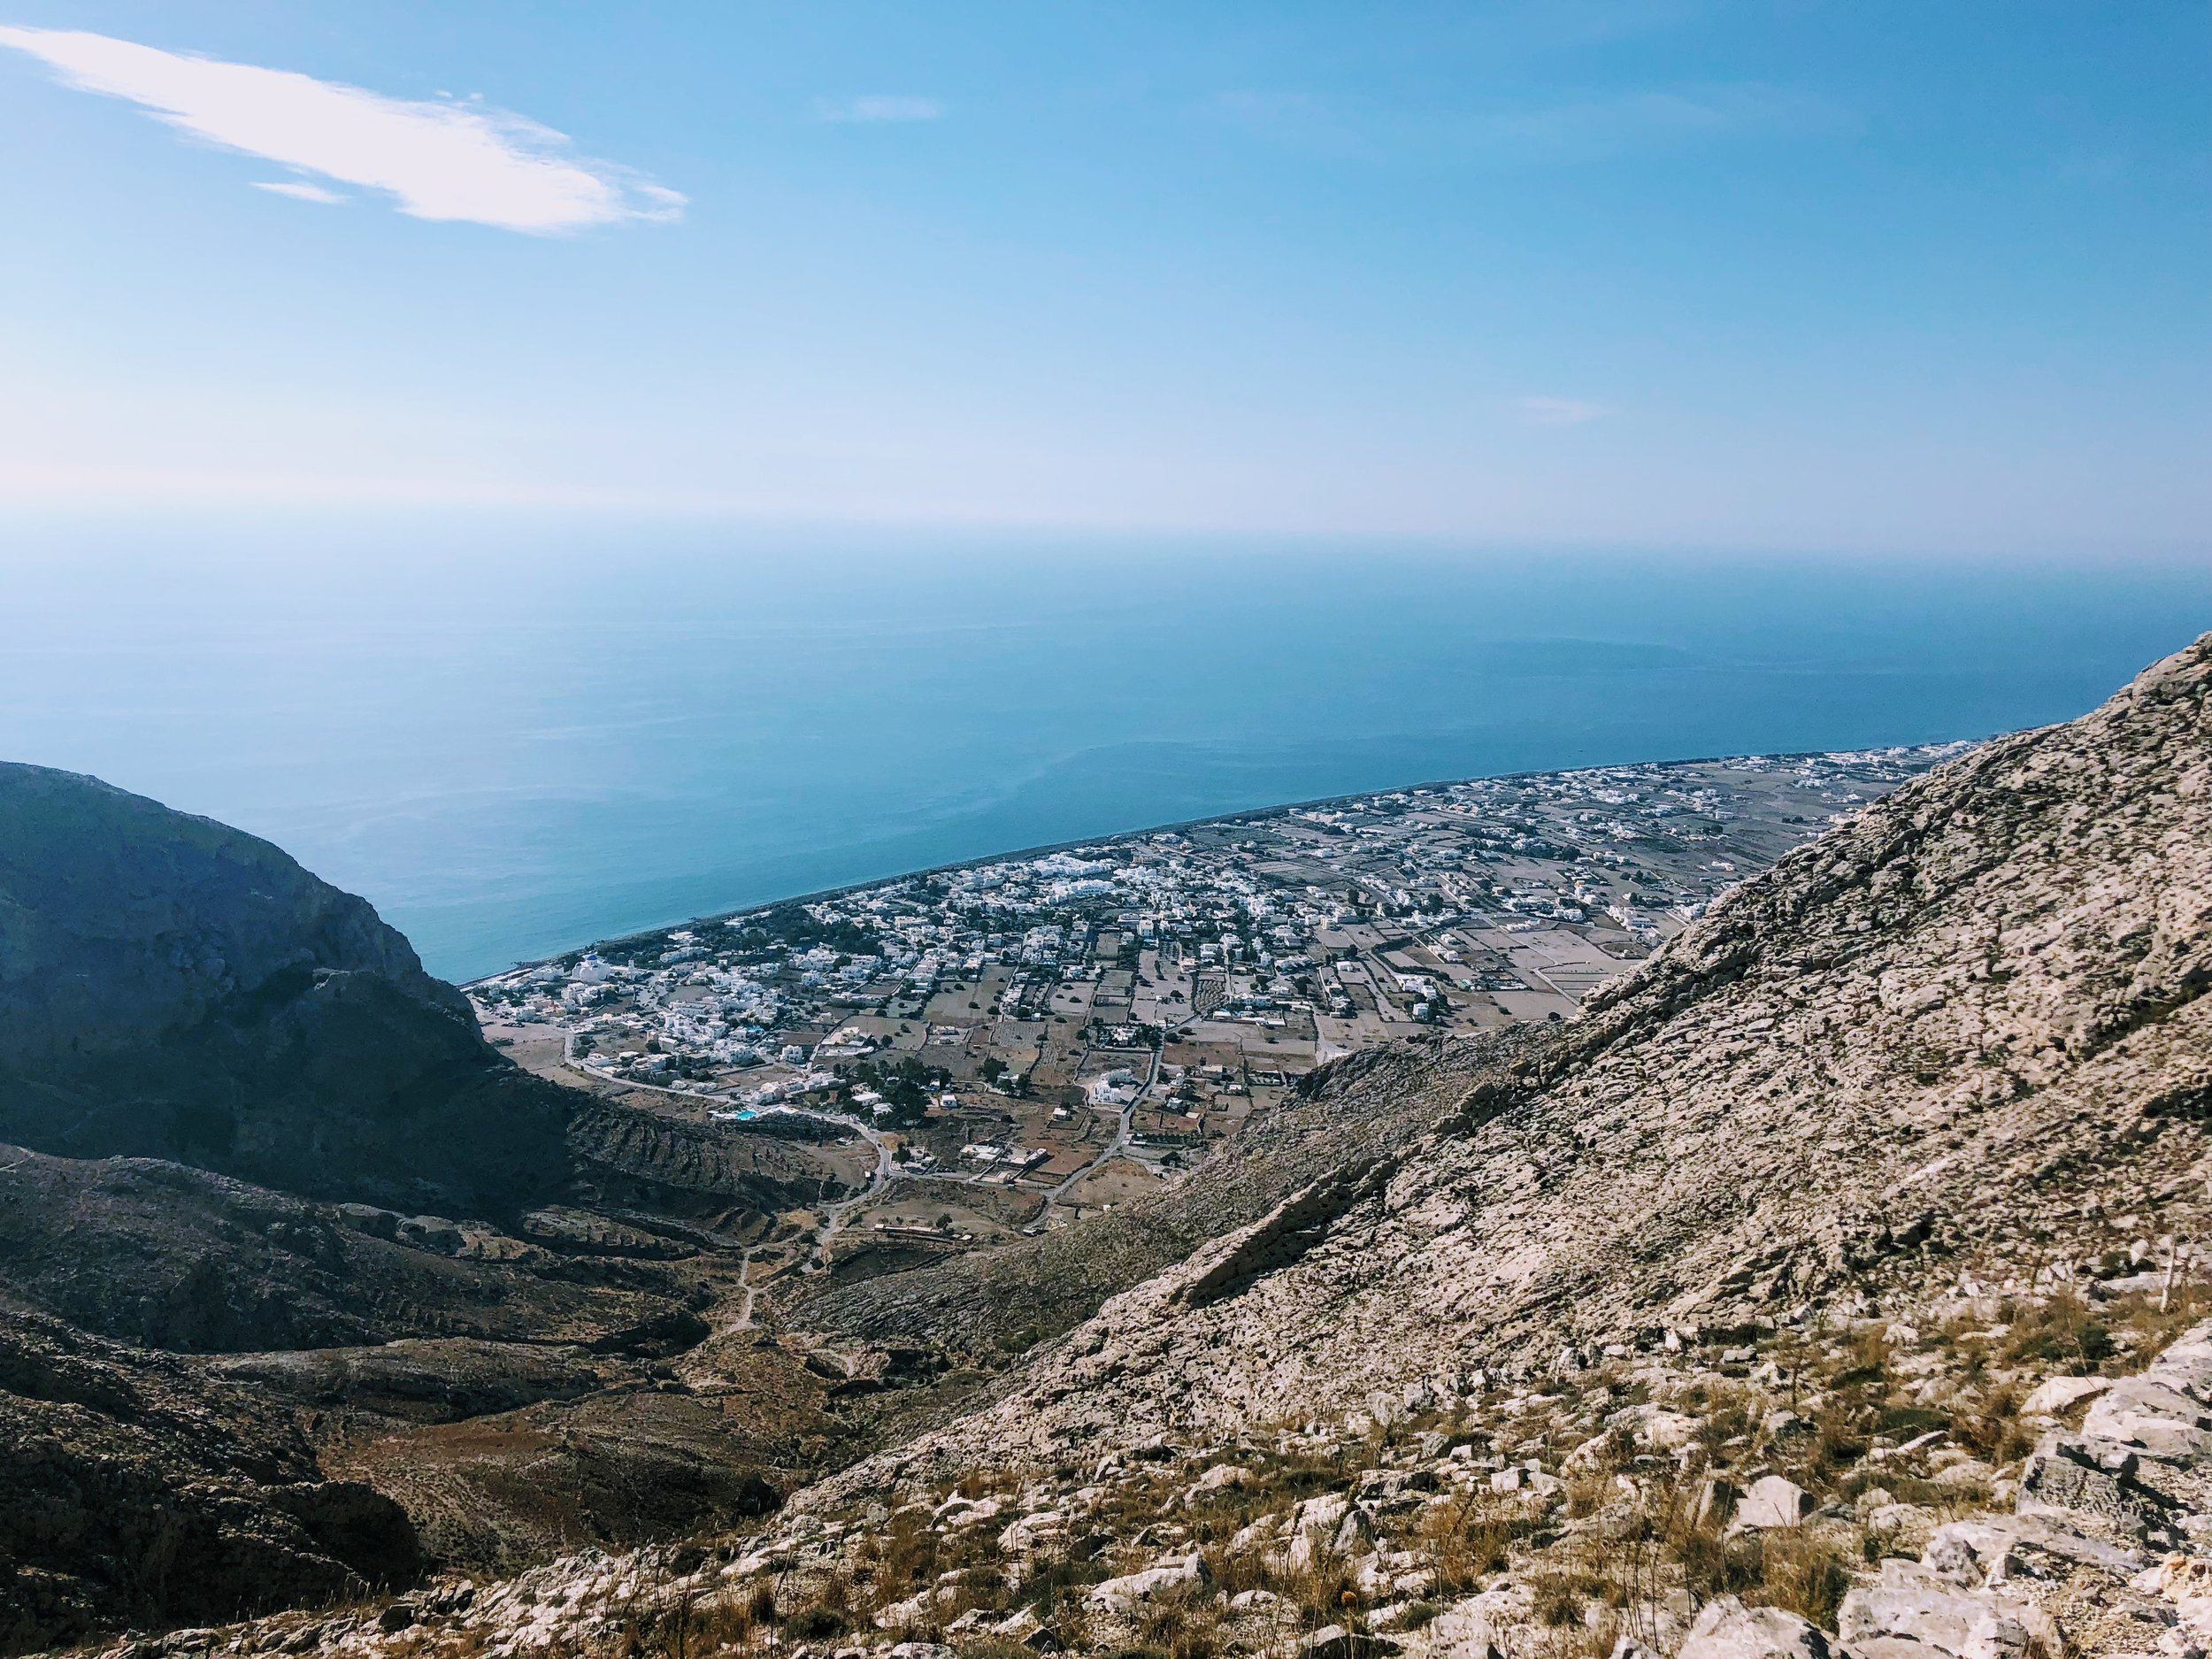 view from the hike down to Perissa beach